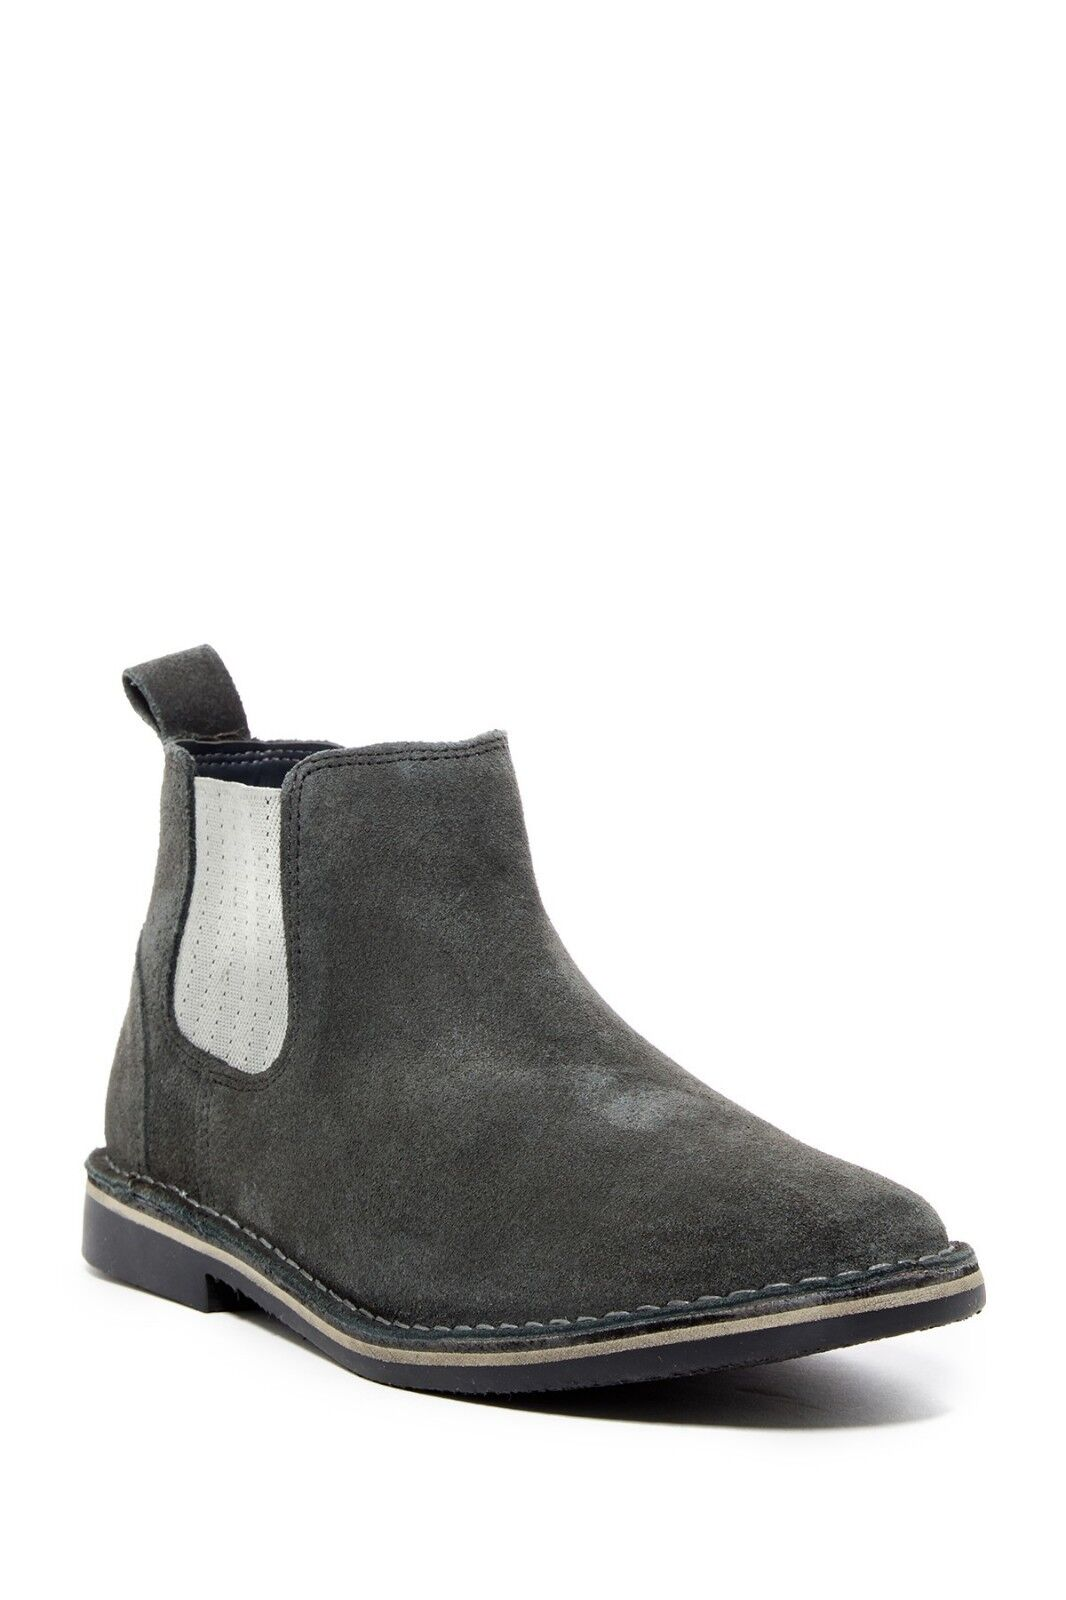 New Chelsea Steve Madden Intuit Suede Chelsea New Boot  men's Größe 8 781d4a